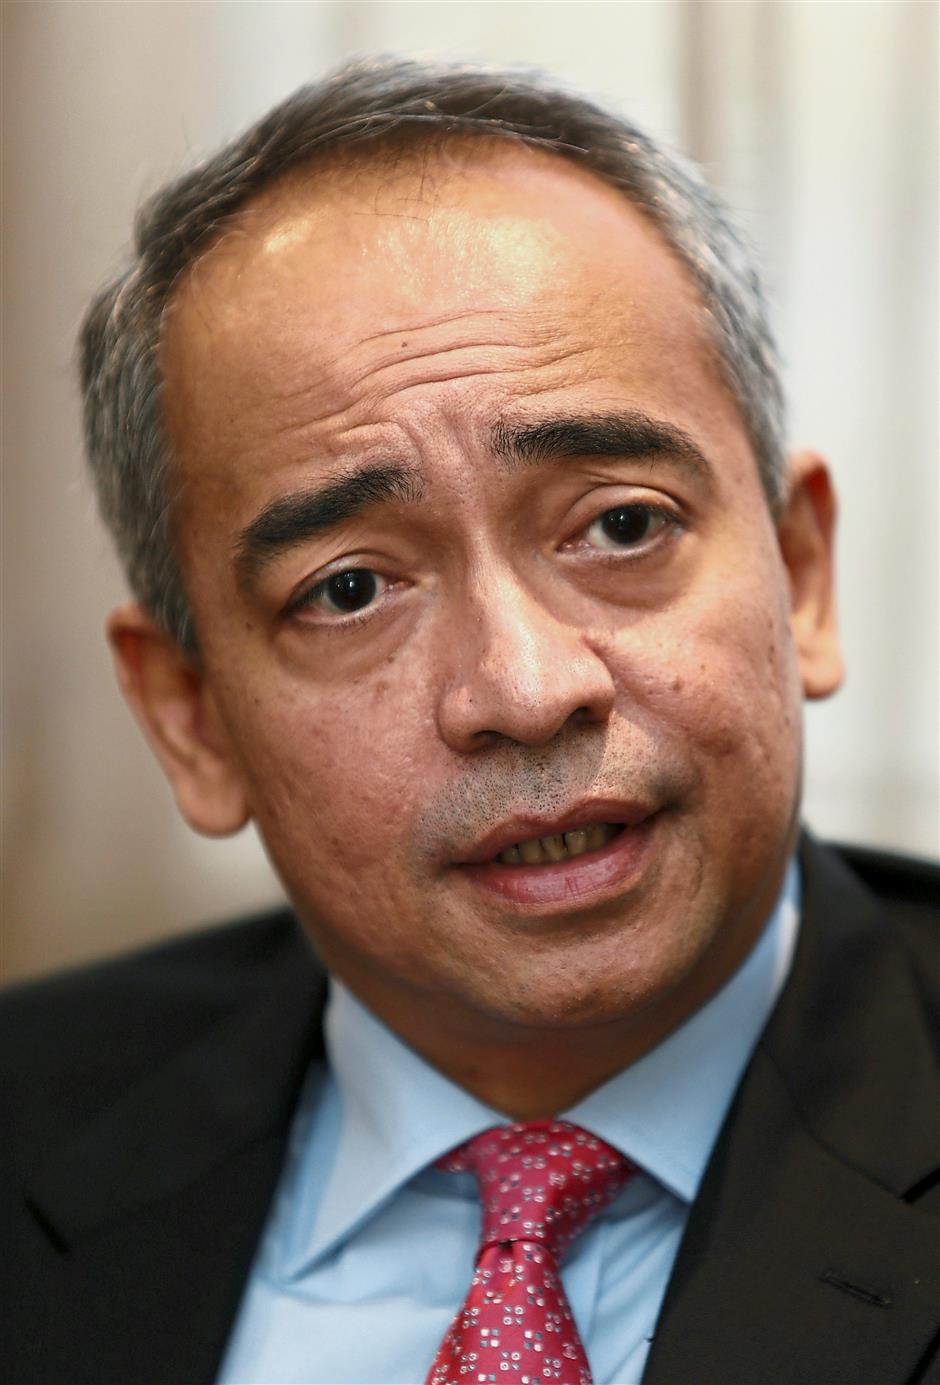 The face of CIMB: Nazir (inset) has spent close to three decades at the banking group, with 15 of those years as CEO.